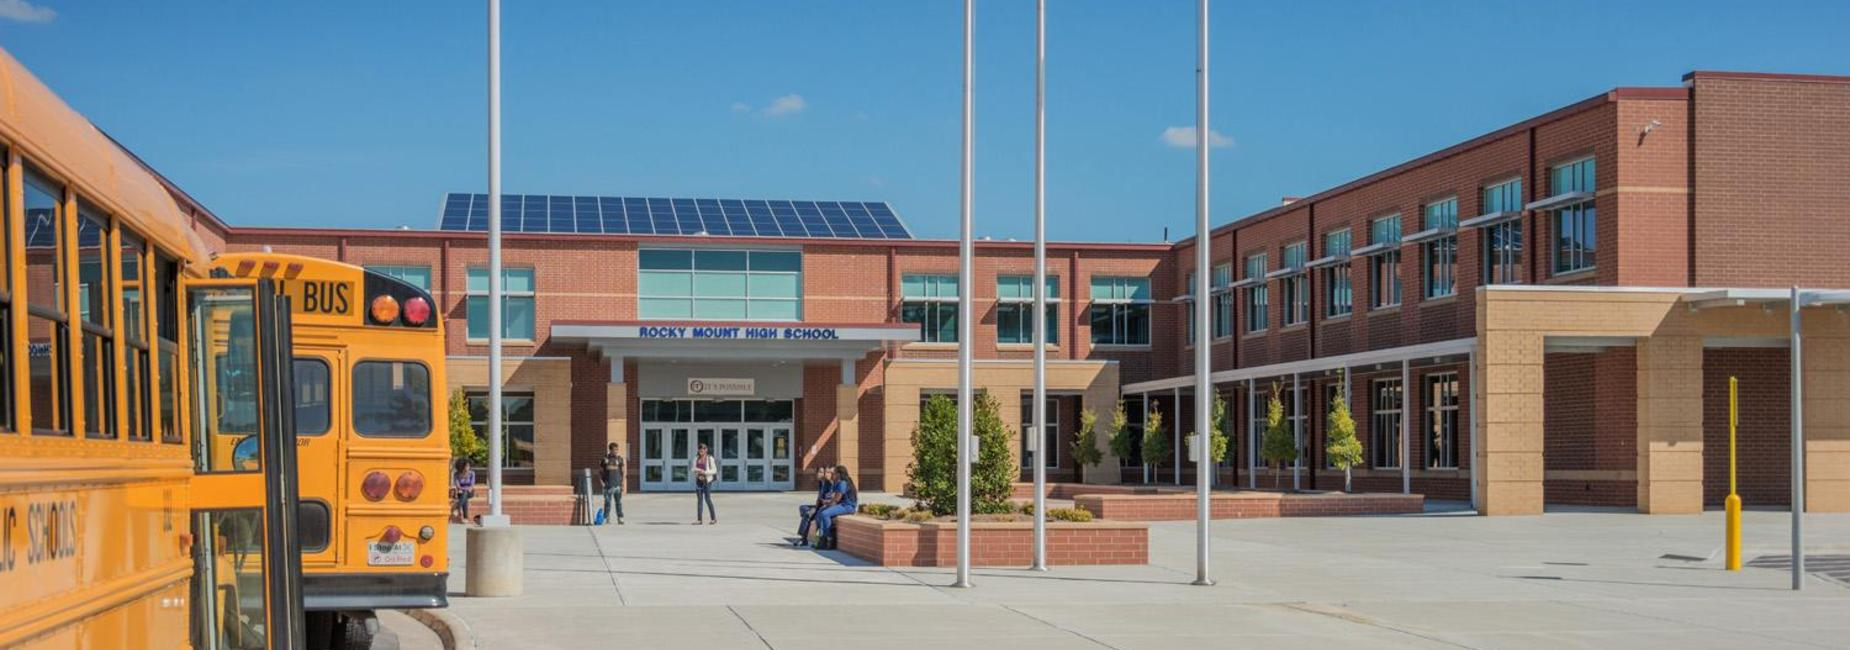 RMHS Entry Plaza